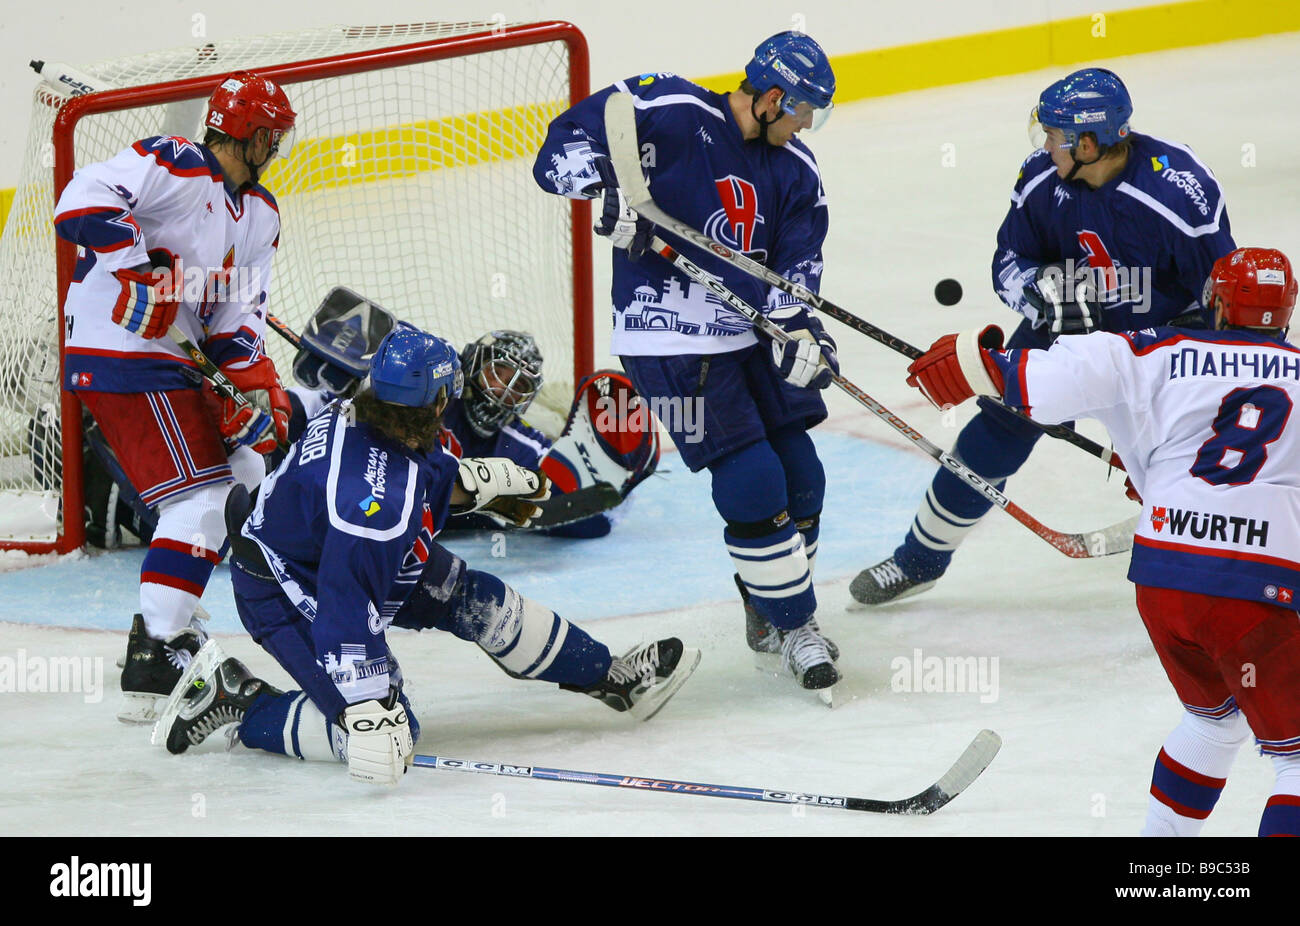 An intense moment at the goal during a hockey match between CSKA Moscow and Sibir Novosibirsk at the Moscow based - Stock Image